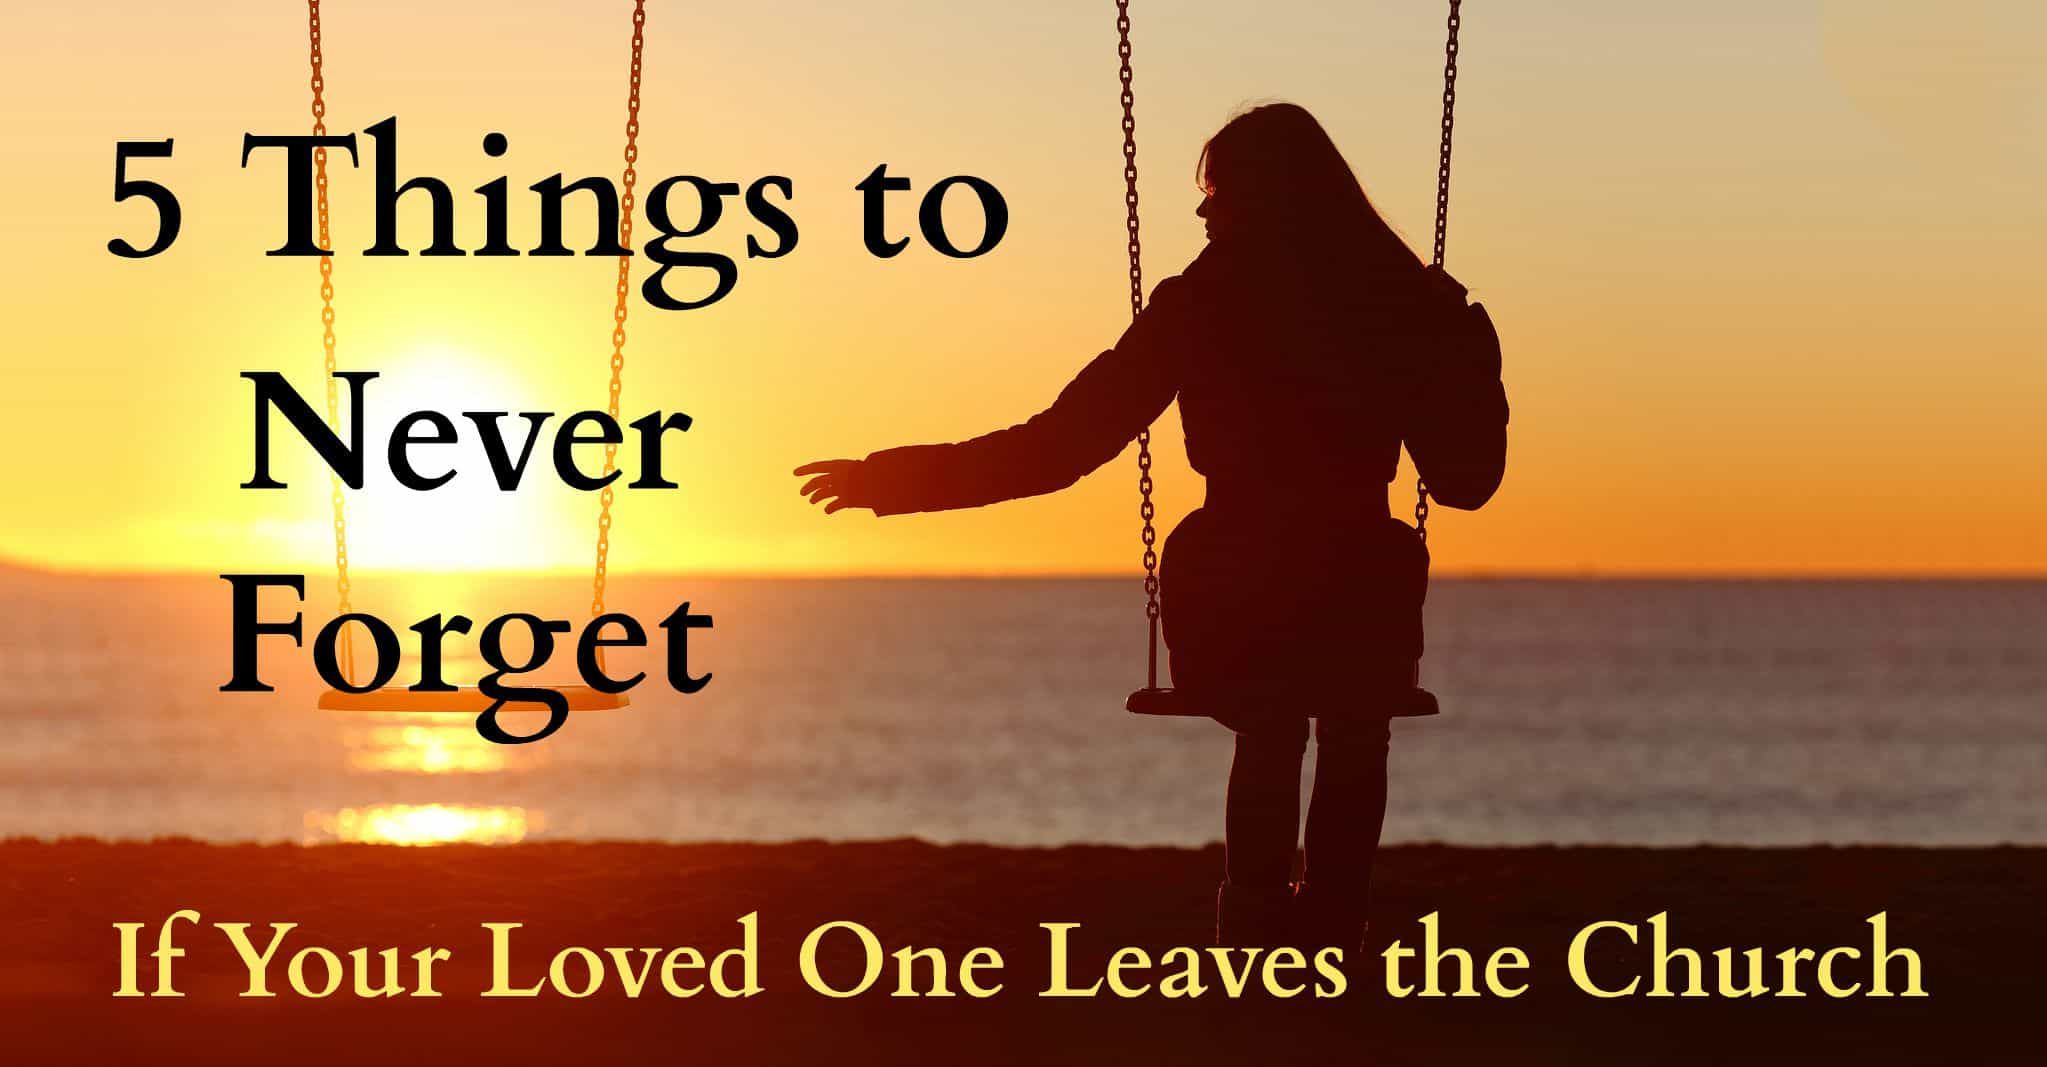 5 things to never forget if your loved one leaves the church - the